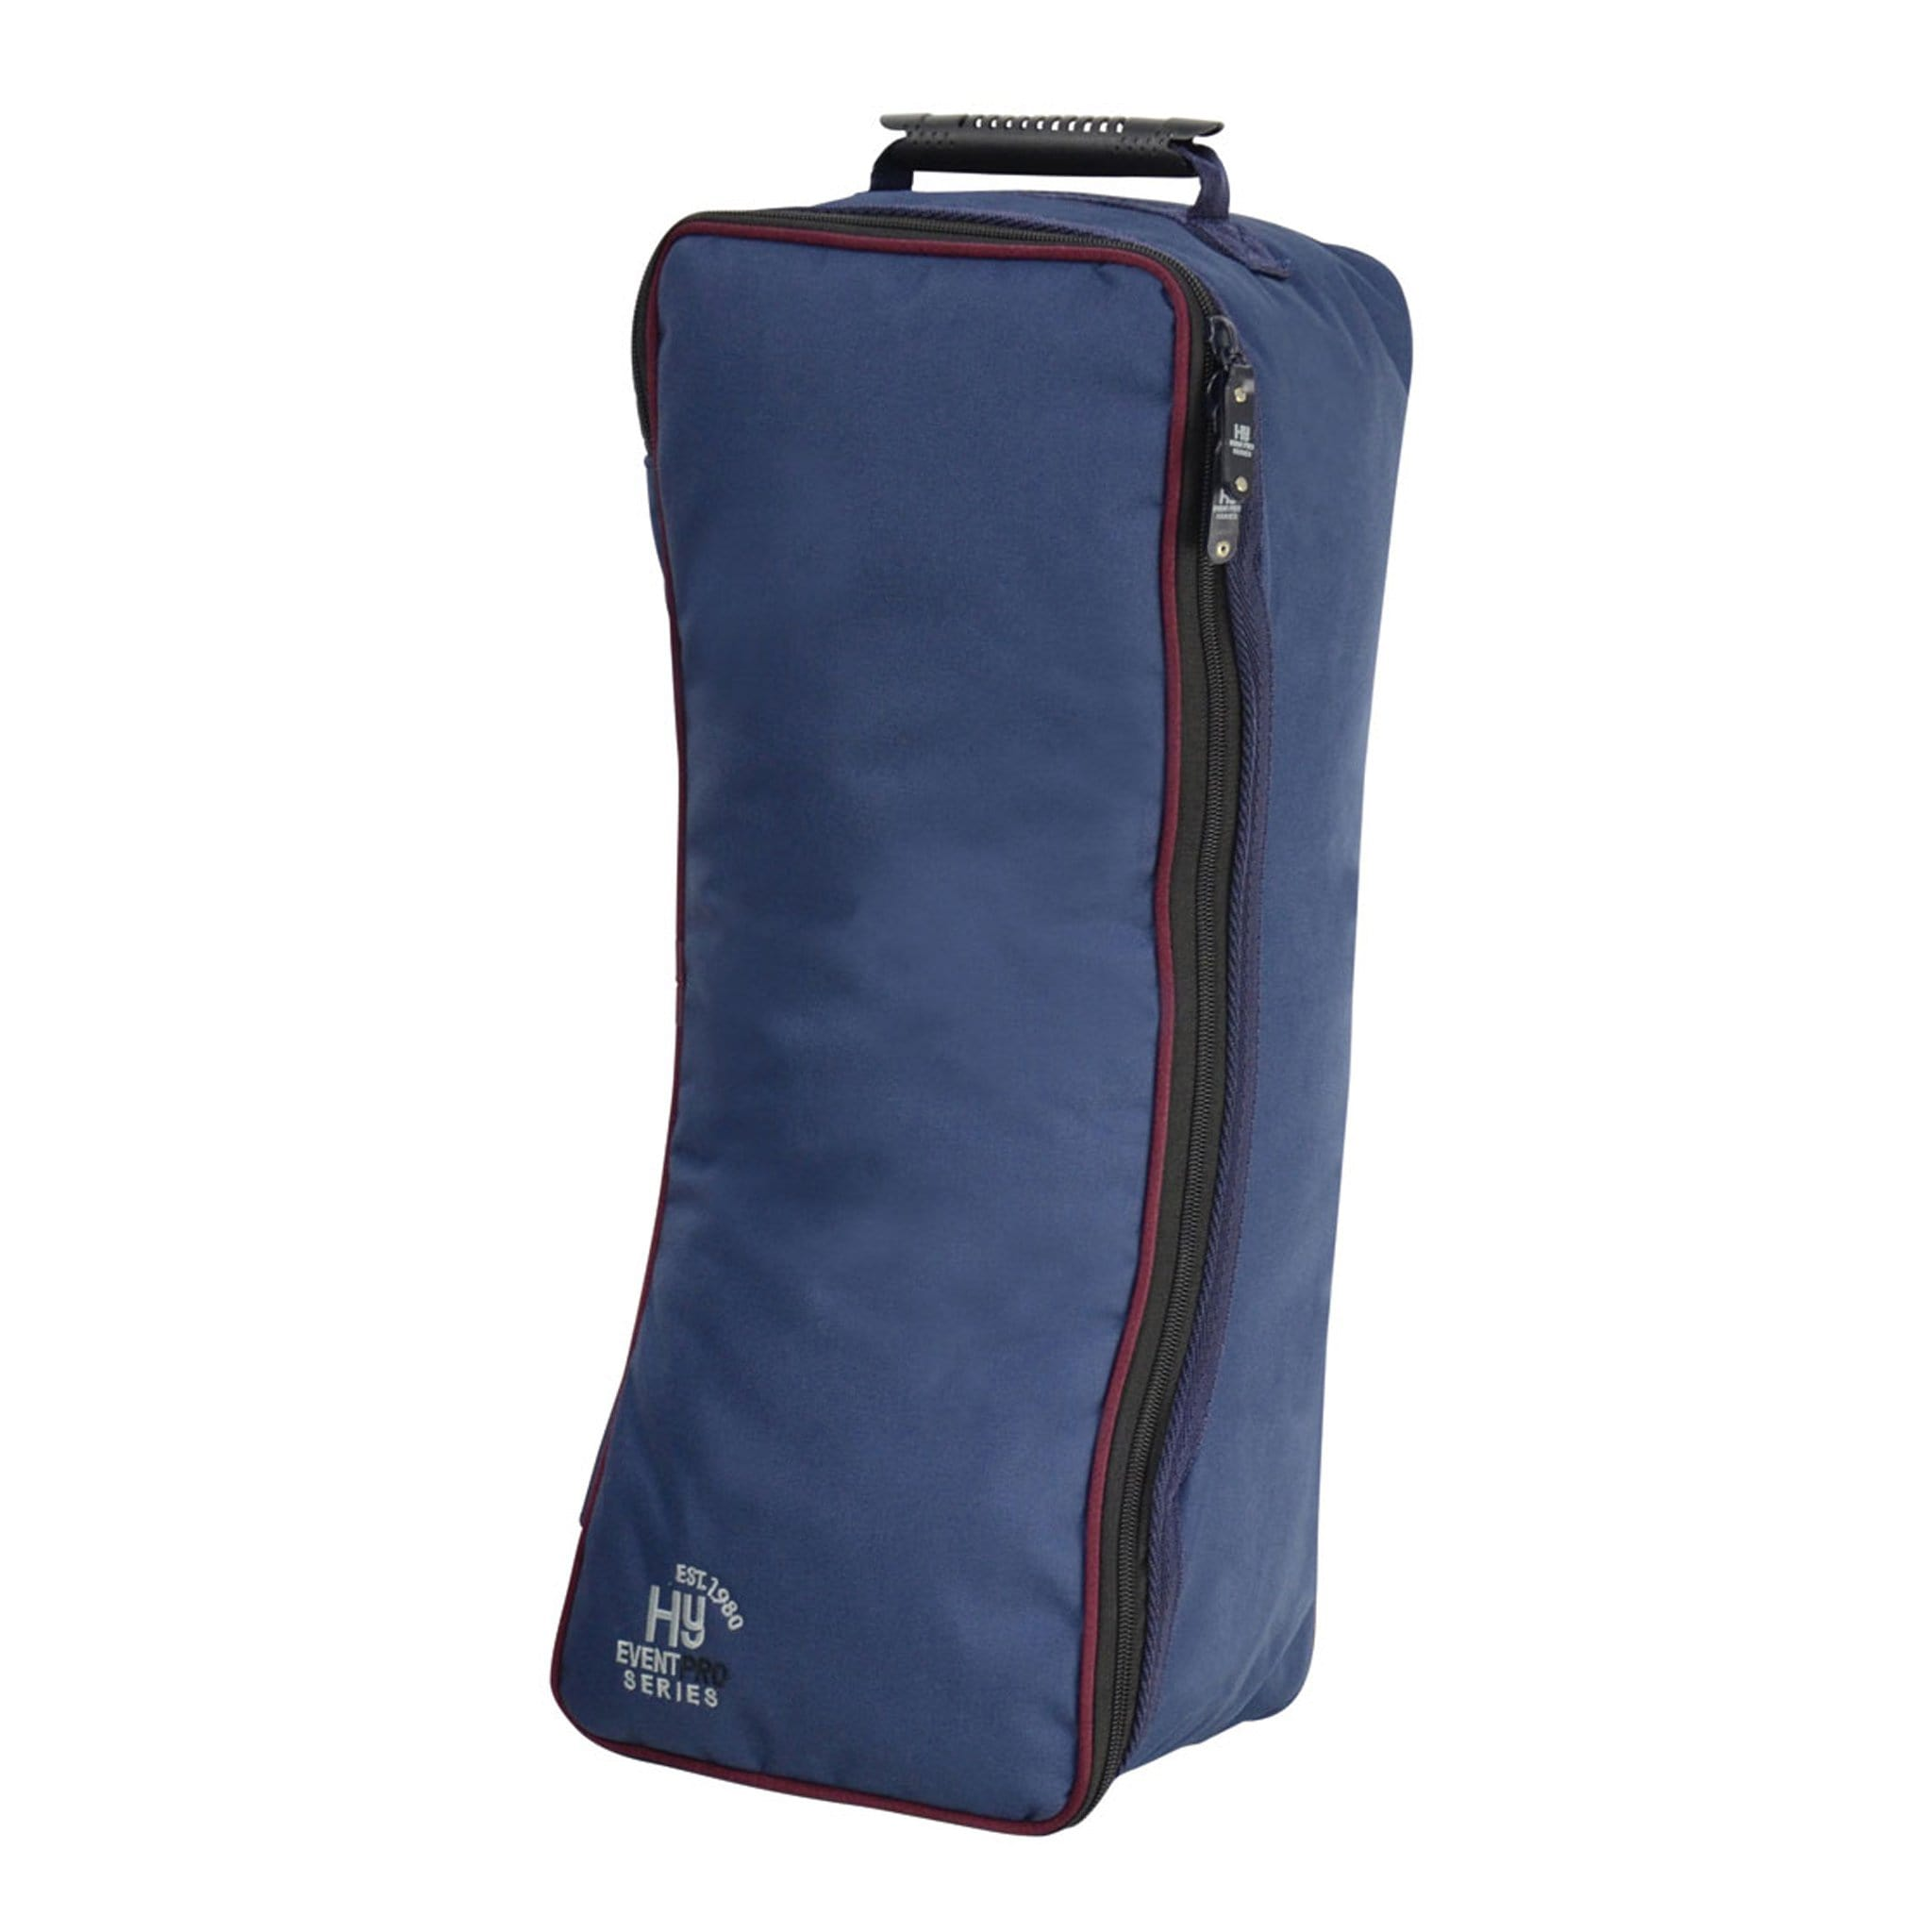 Hy Event Pro Series Bridle Bag 16871 Navy and Burgundy Front